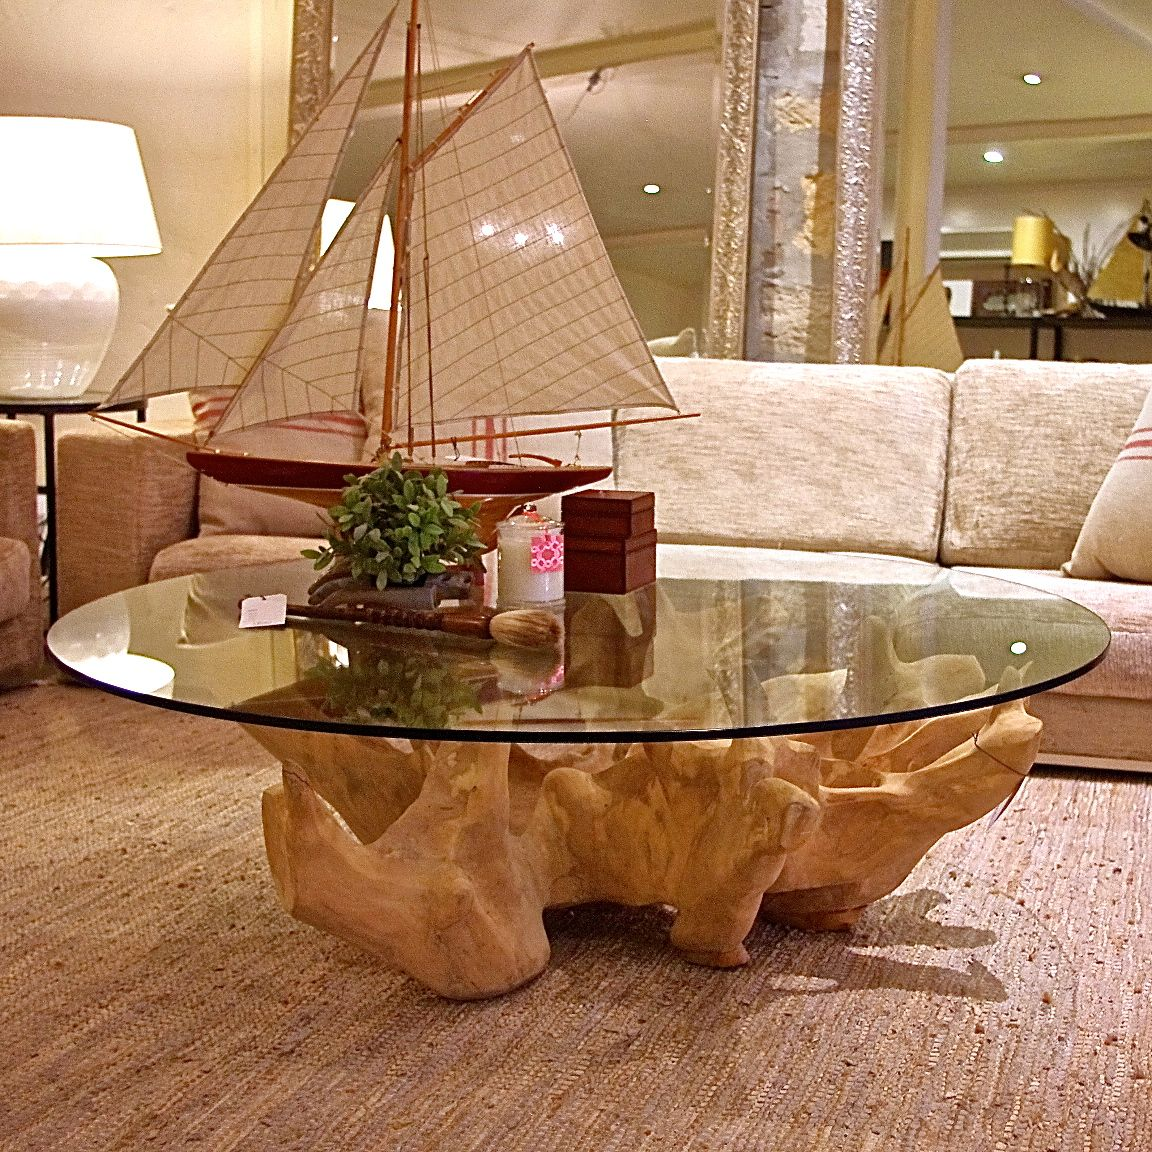 tree stump furniture ideas. Furniture:Modern Furniture Ideas For Outdoor Experience Diy Tree Trunk Coffee Table With Glass Top And Ship Miniature Inside Glamour Living Room Stump E